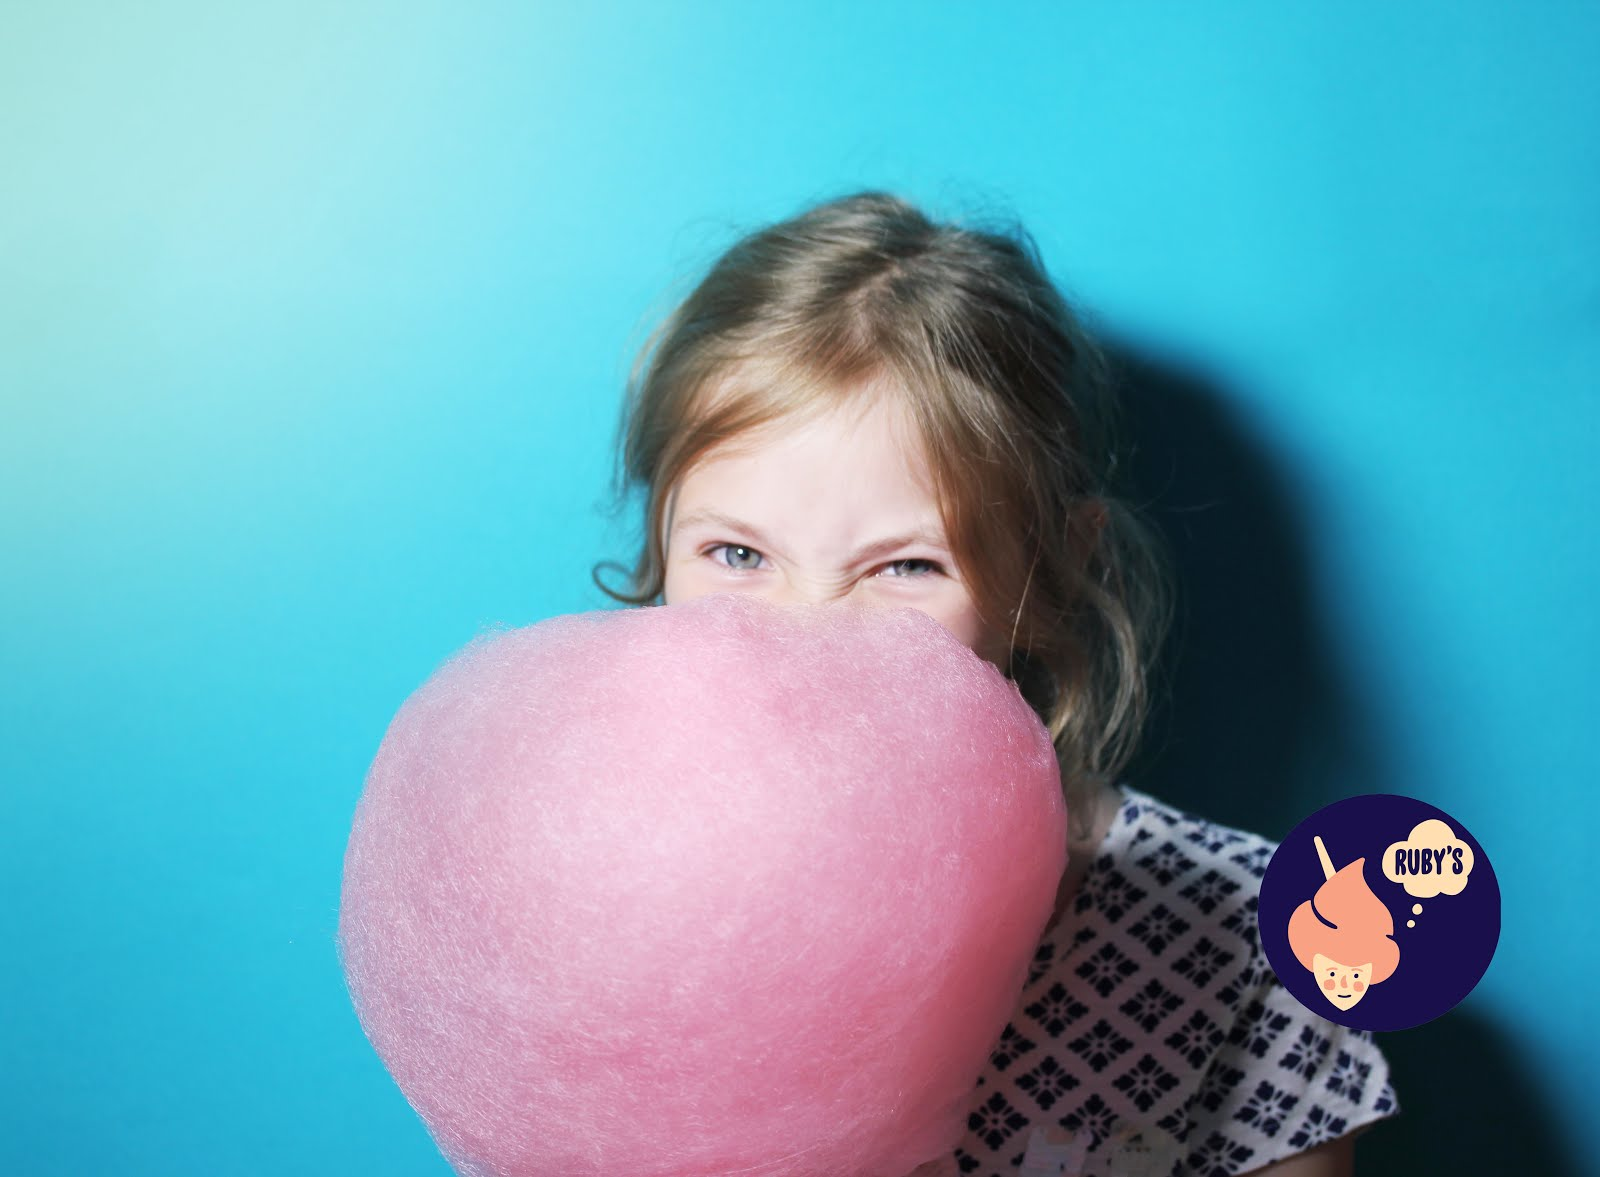 Ruby's Cotton Candy Club puts a kid's modern spin on a classic carnival treat....